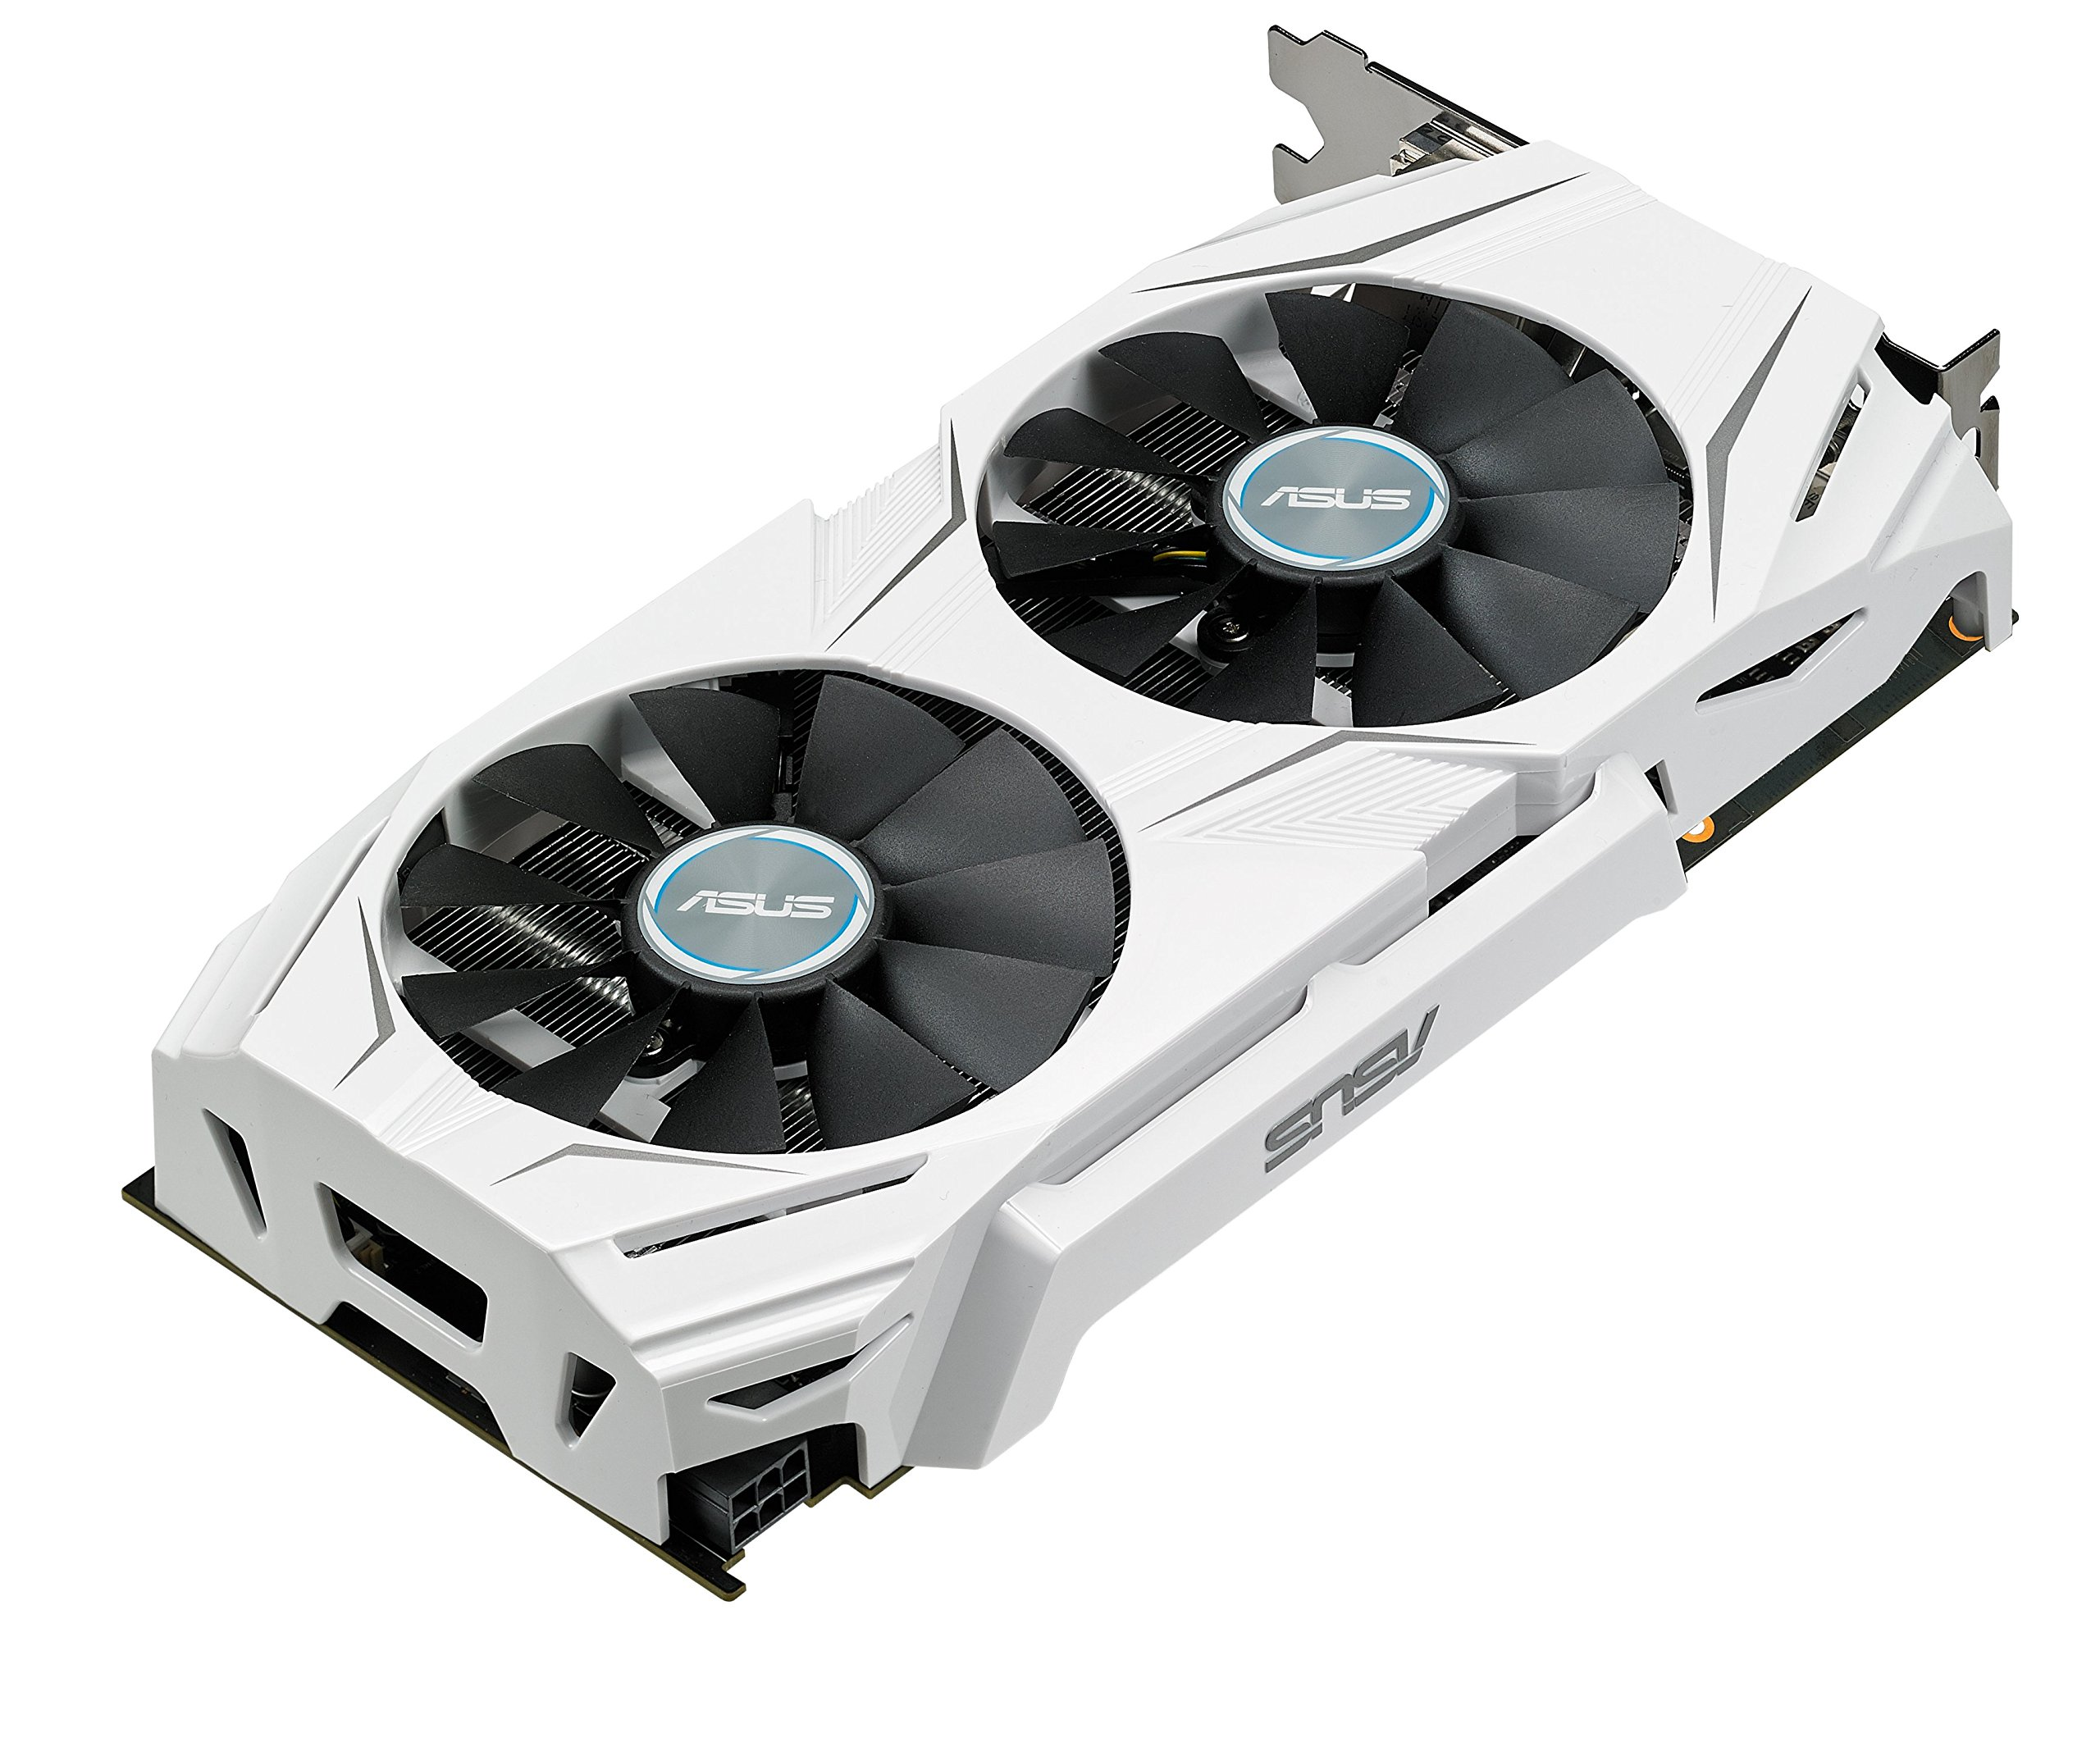 ASUS GeForce GTX 1060 3GB Dual-Fan OC Edition Graphics Card (DUAL-GTX1060-O3G) by Asus (Image #6)